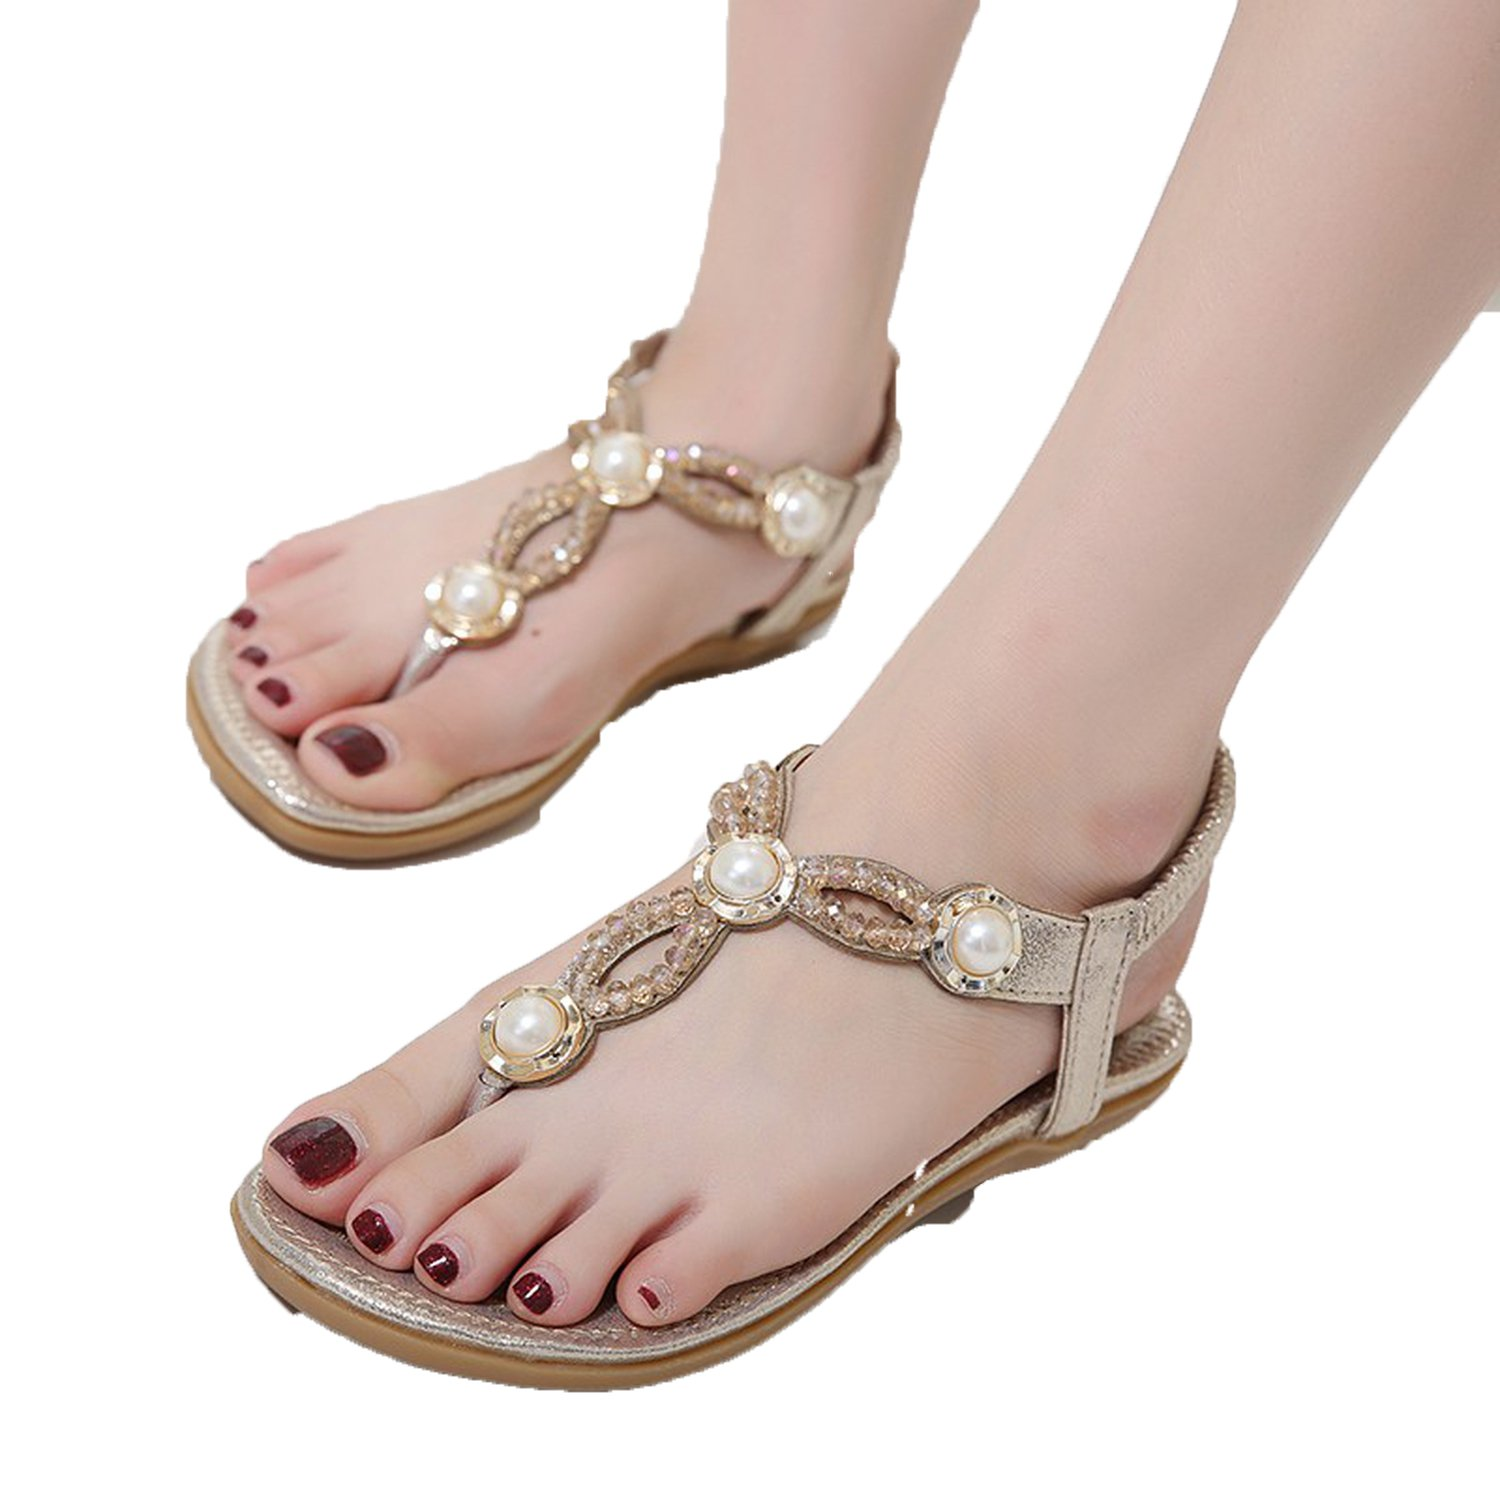 Good-memories Women Sandals Summer 2018 Shoes Woman Gladiator Bohemia Flat Casual Sandals Crystal St